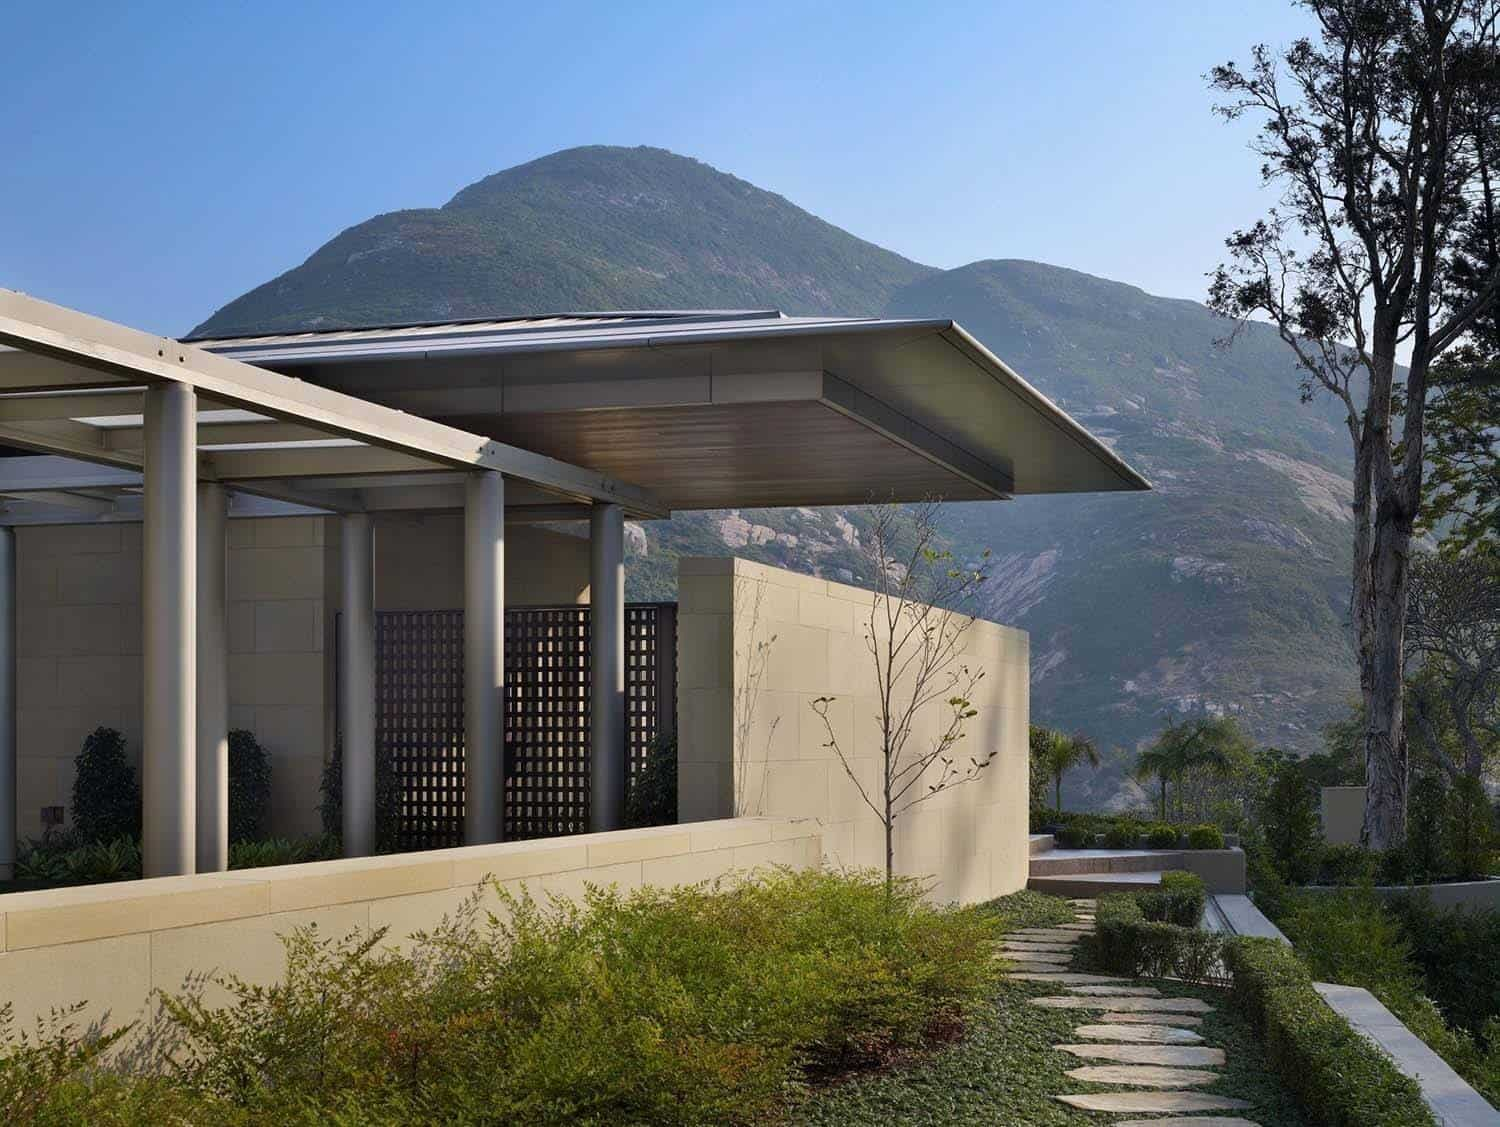 Hong Kong Villa-Olson Kundig Architects-05-1 Kindesign